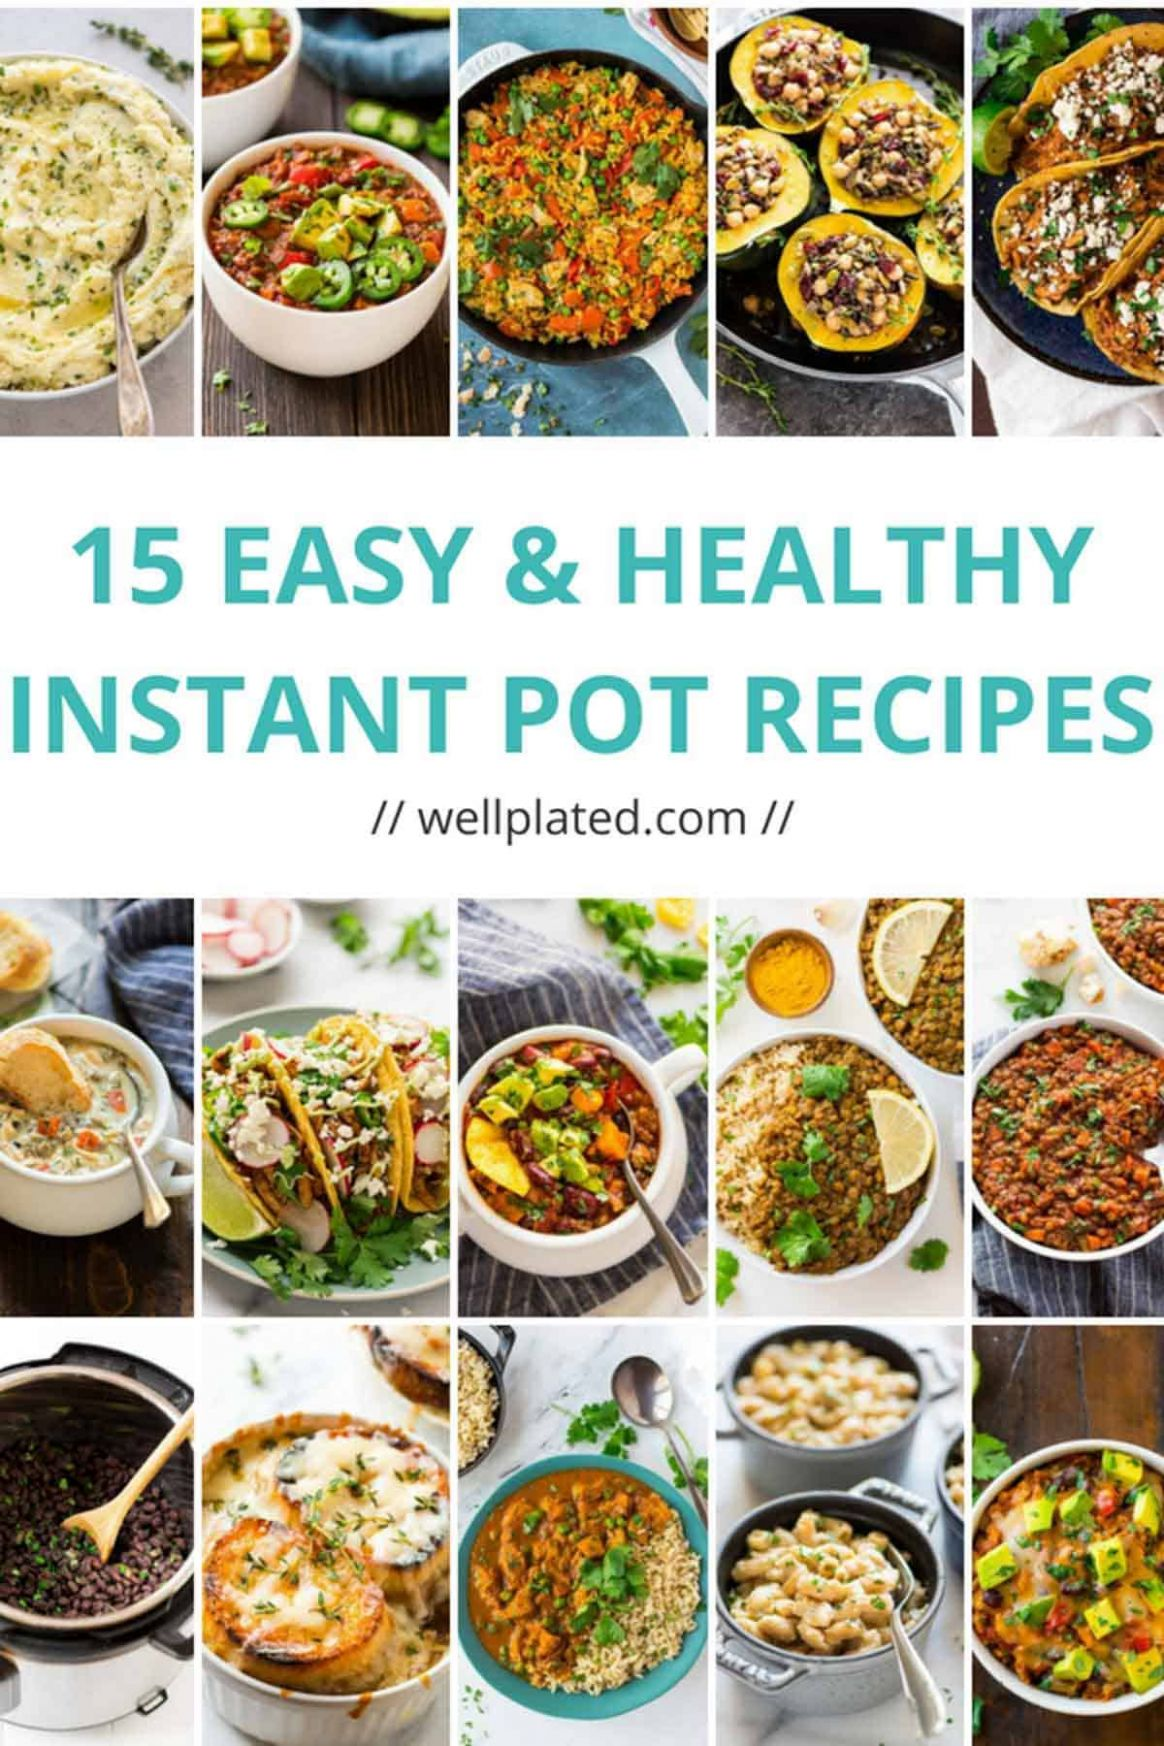 8 Healthy Instant Pot Recipes That Anyone Can Make